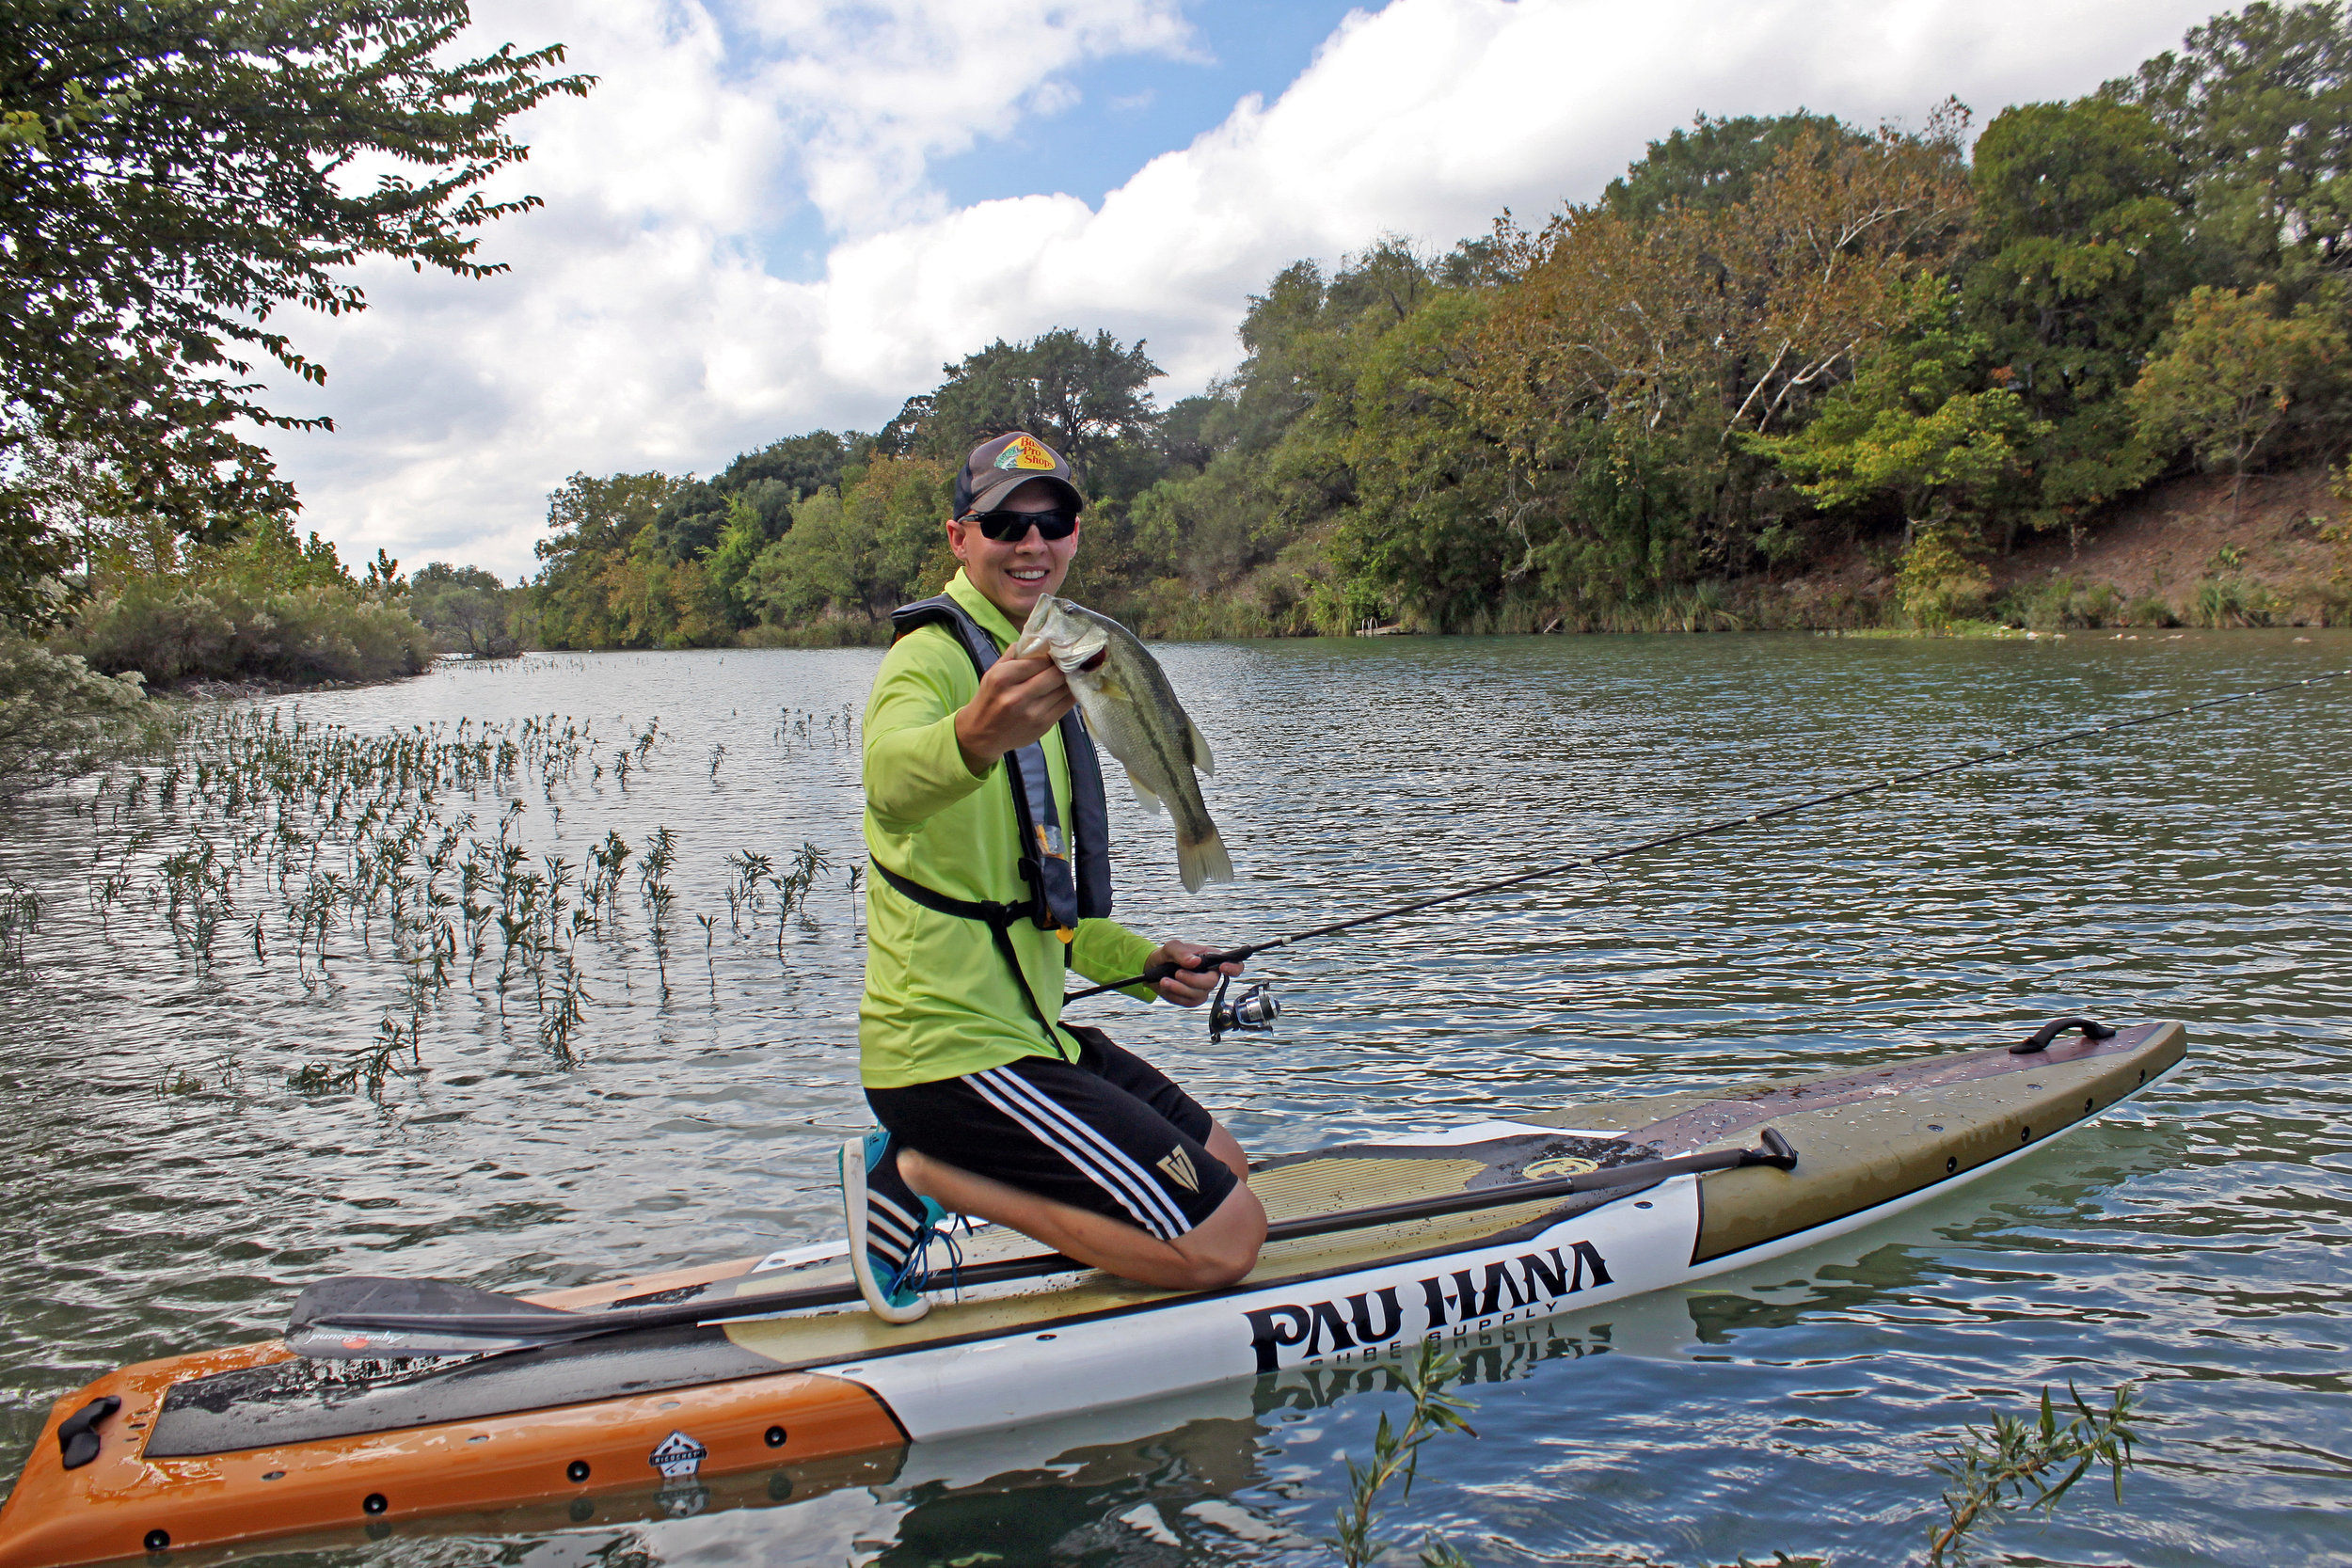 Clint Taylor Pau Hana Endurance Paddleboard on the South Llano River